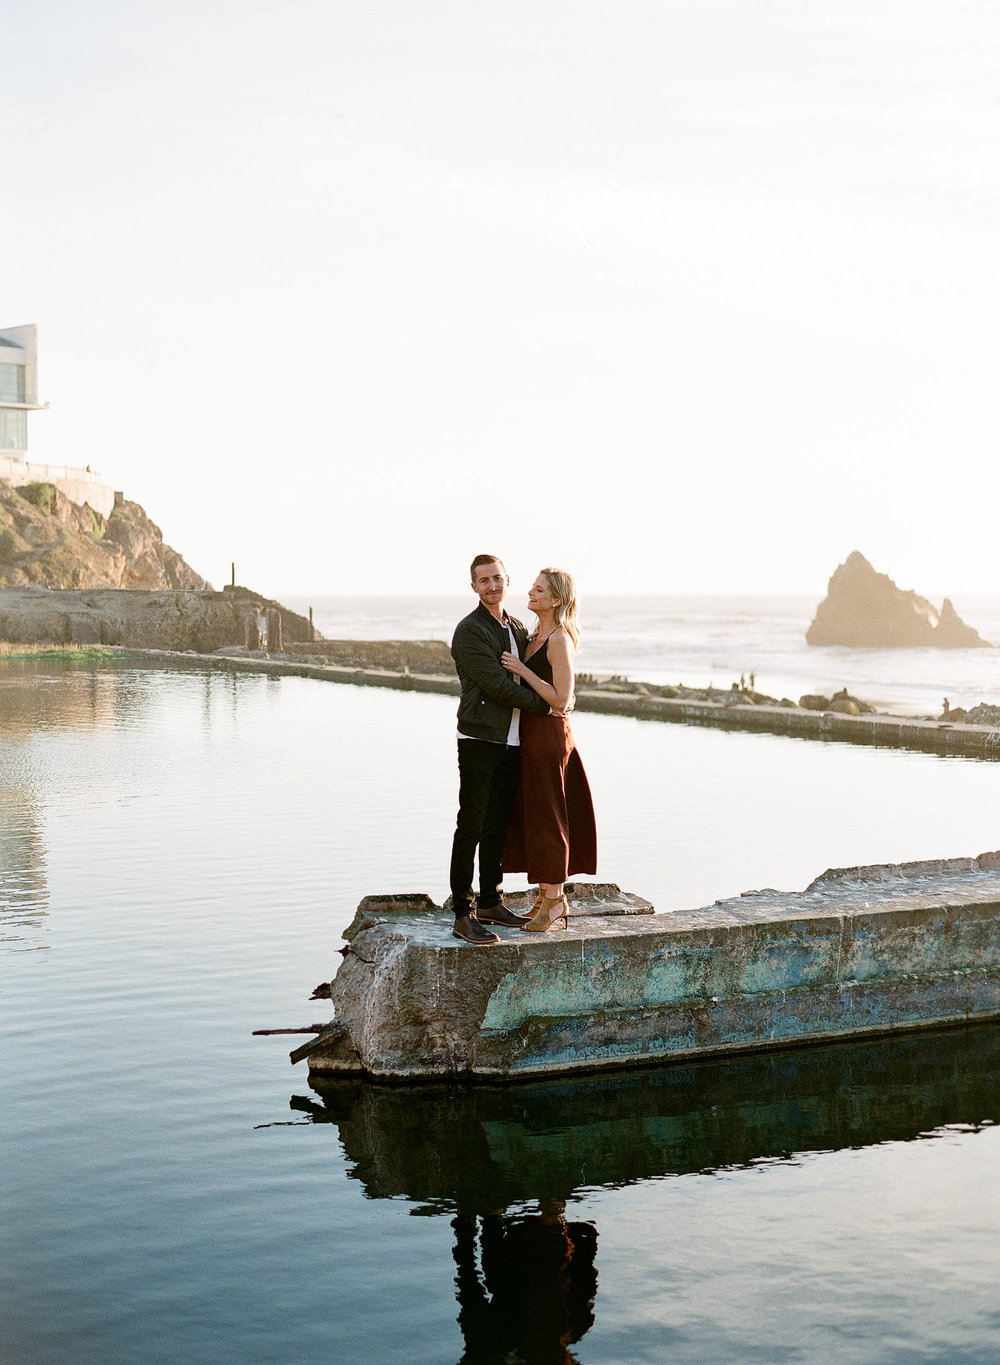 021618_D+K Sutro Baths Engagement_Buena Lane Photography_F400+1_0038.jpg